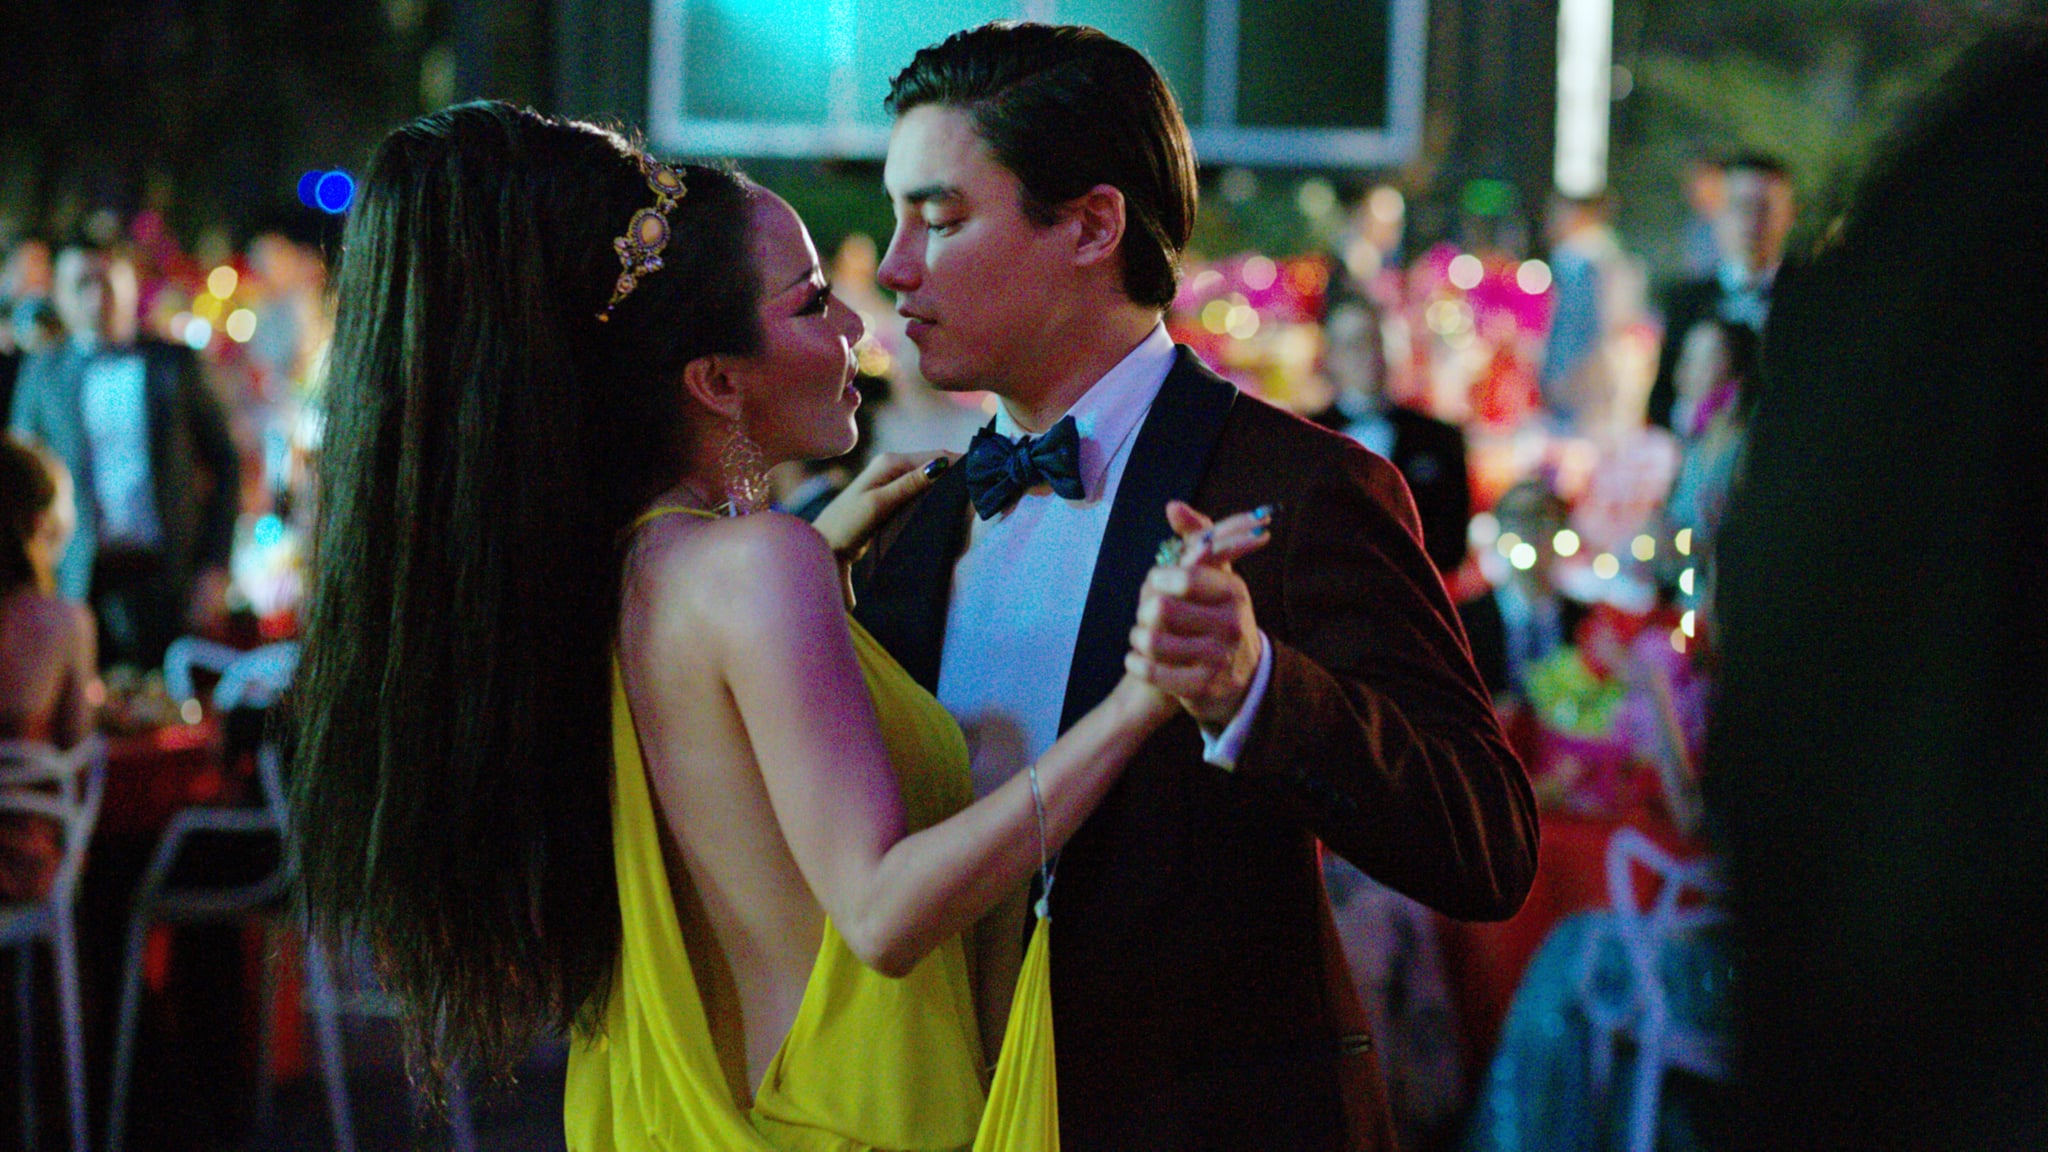 CRAZY RICH ASIANS, from left: Fiona Xie, Remy Hii, 2018. / Warner Bros. Pictures /Courtesy Everett Collection